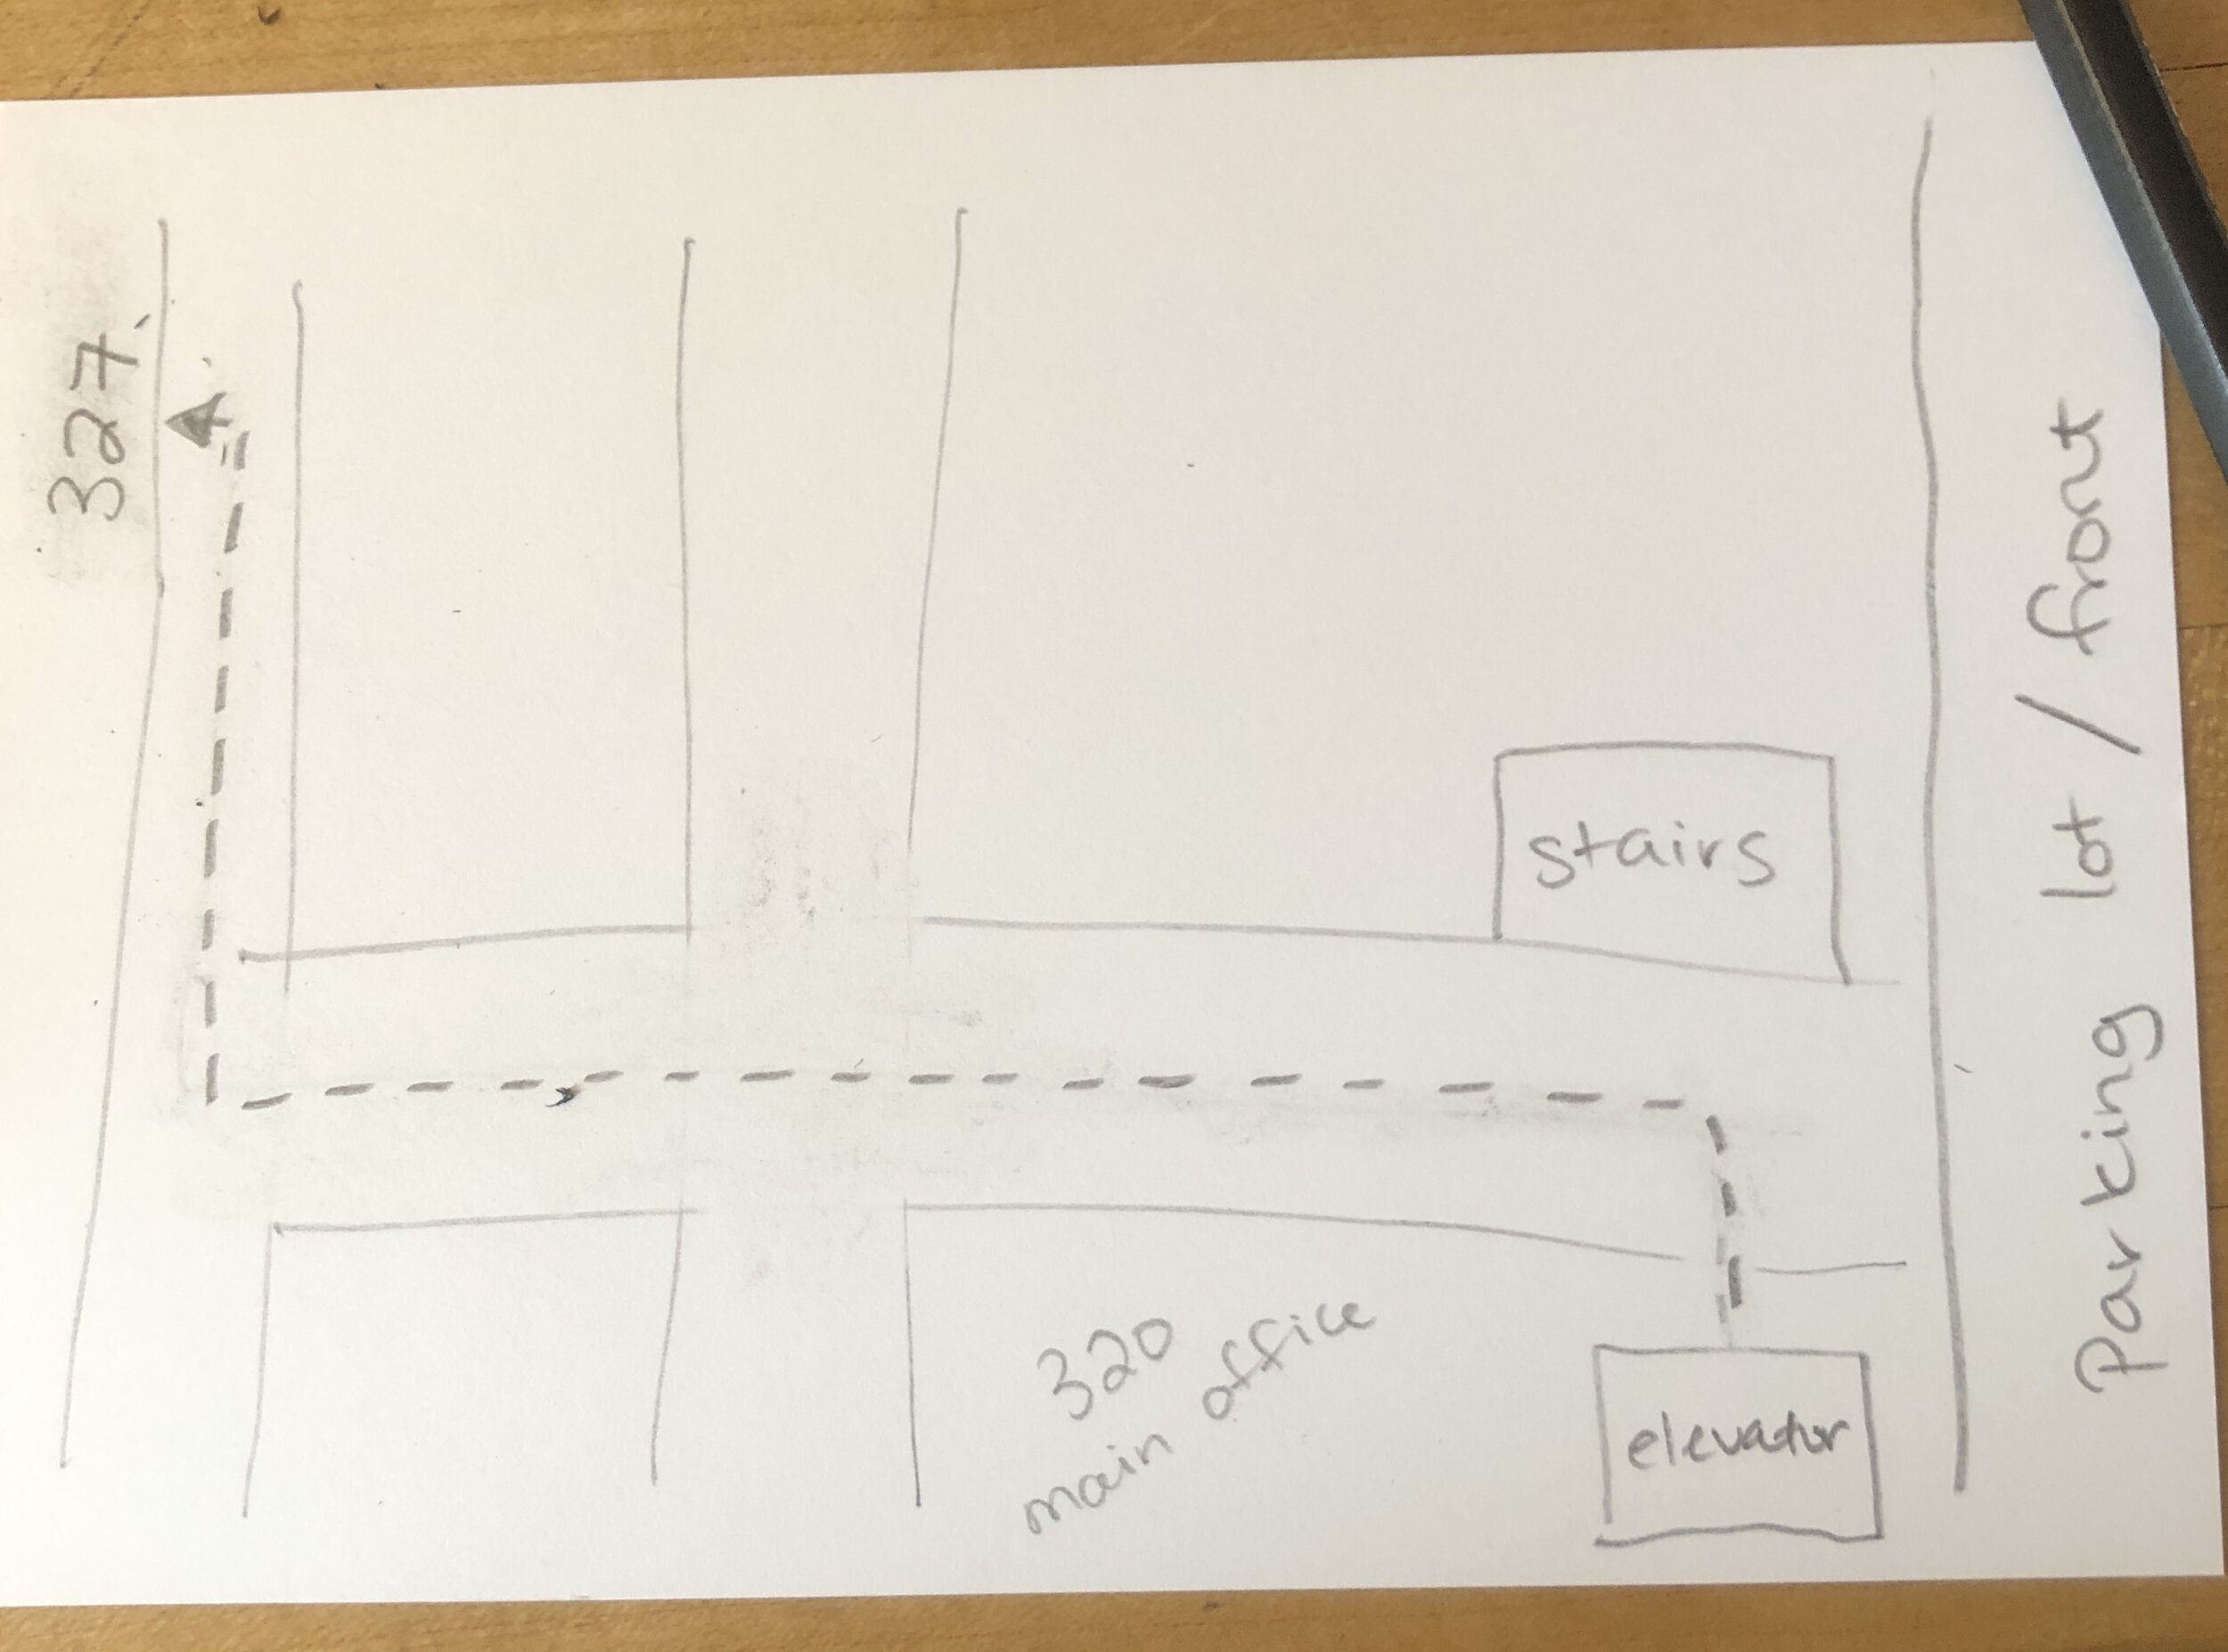 a Very Good Map of the 3rd floor of Eastworks